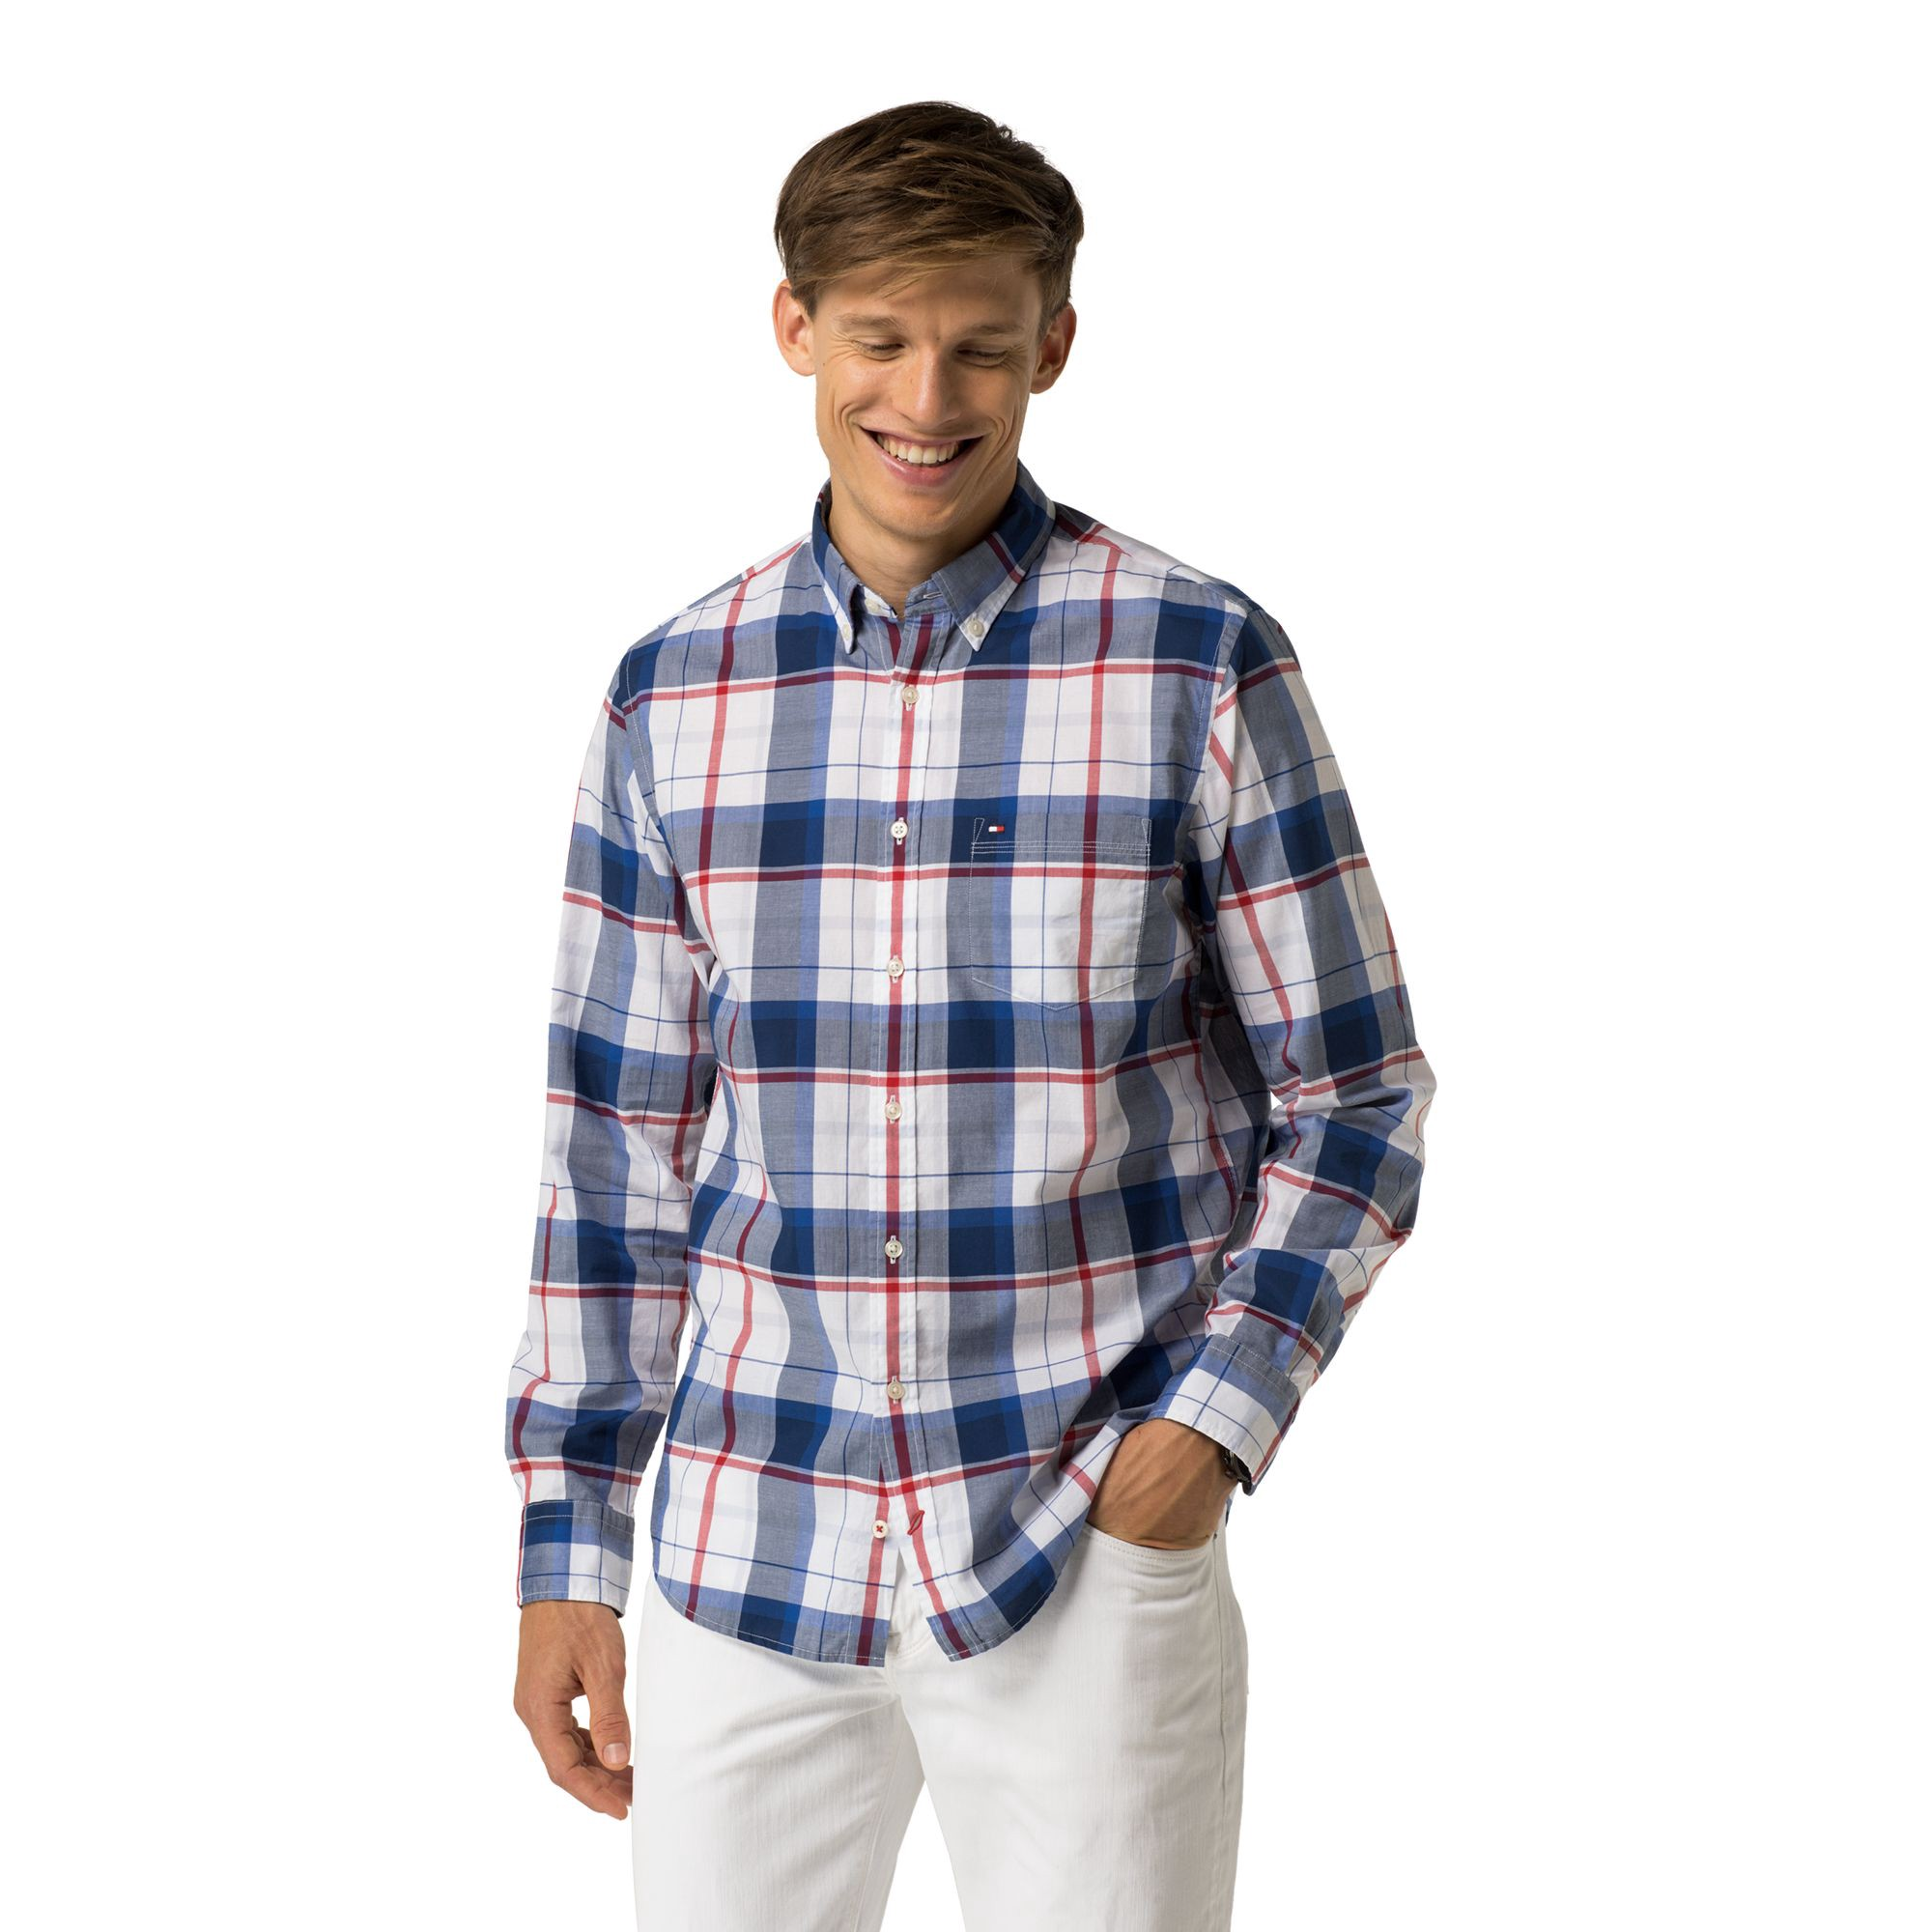 TOMMY HILFIGER New York Fit Plaid Shirt - Apple Red / Classic White / Multi